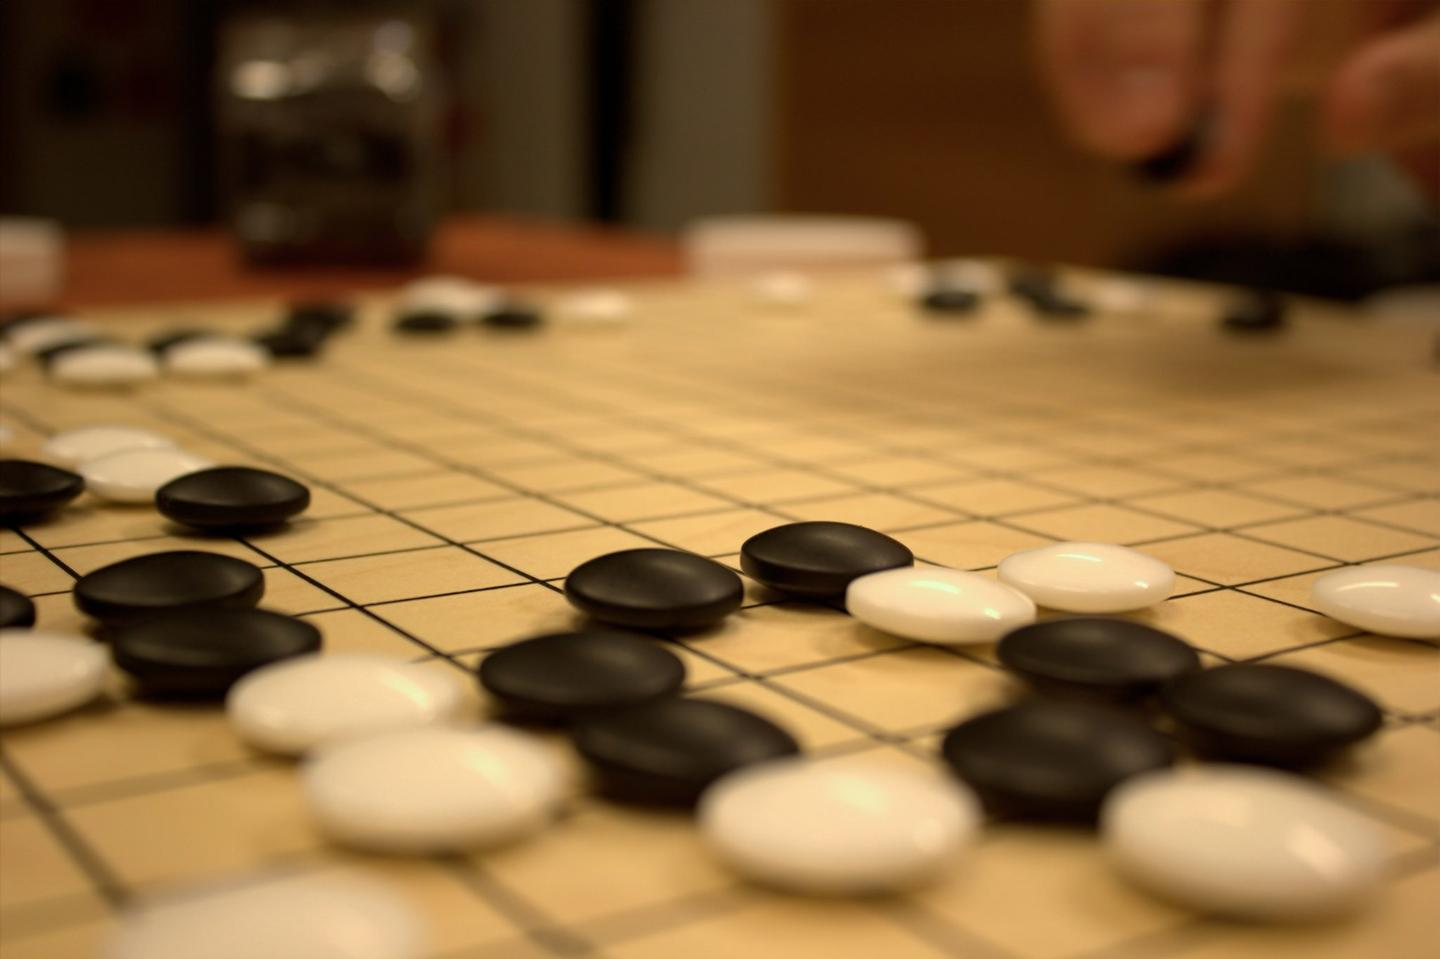 The ancient Chinese game of Go presents a hugely difficult, yet irresistible challenge for AI researchers